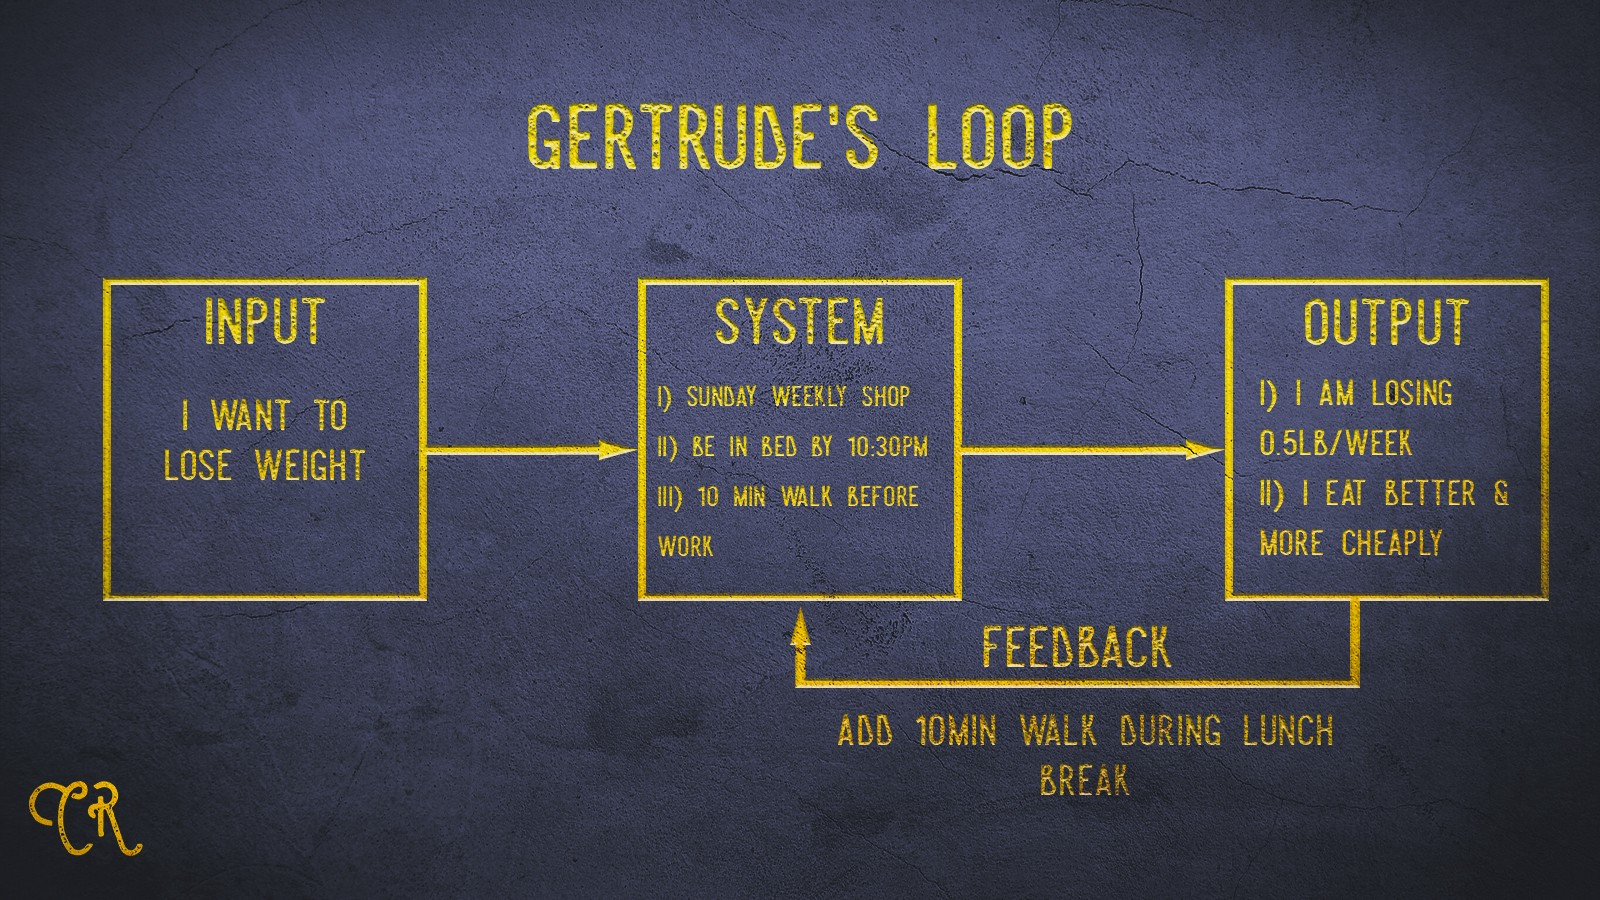 Gertrude's Improved Loop by Cameron Readman